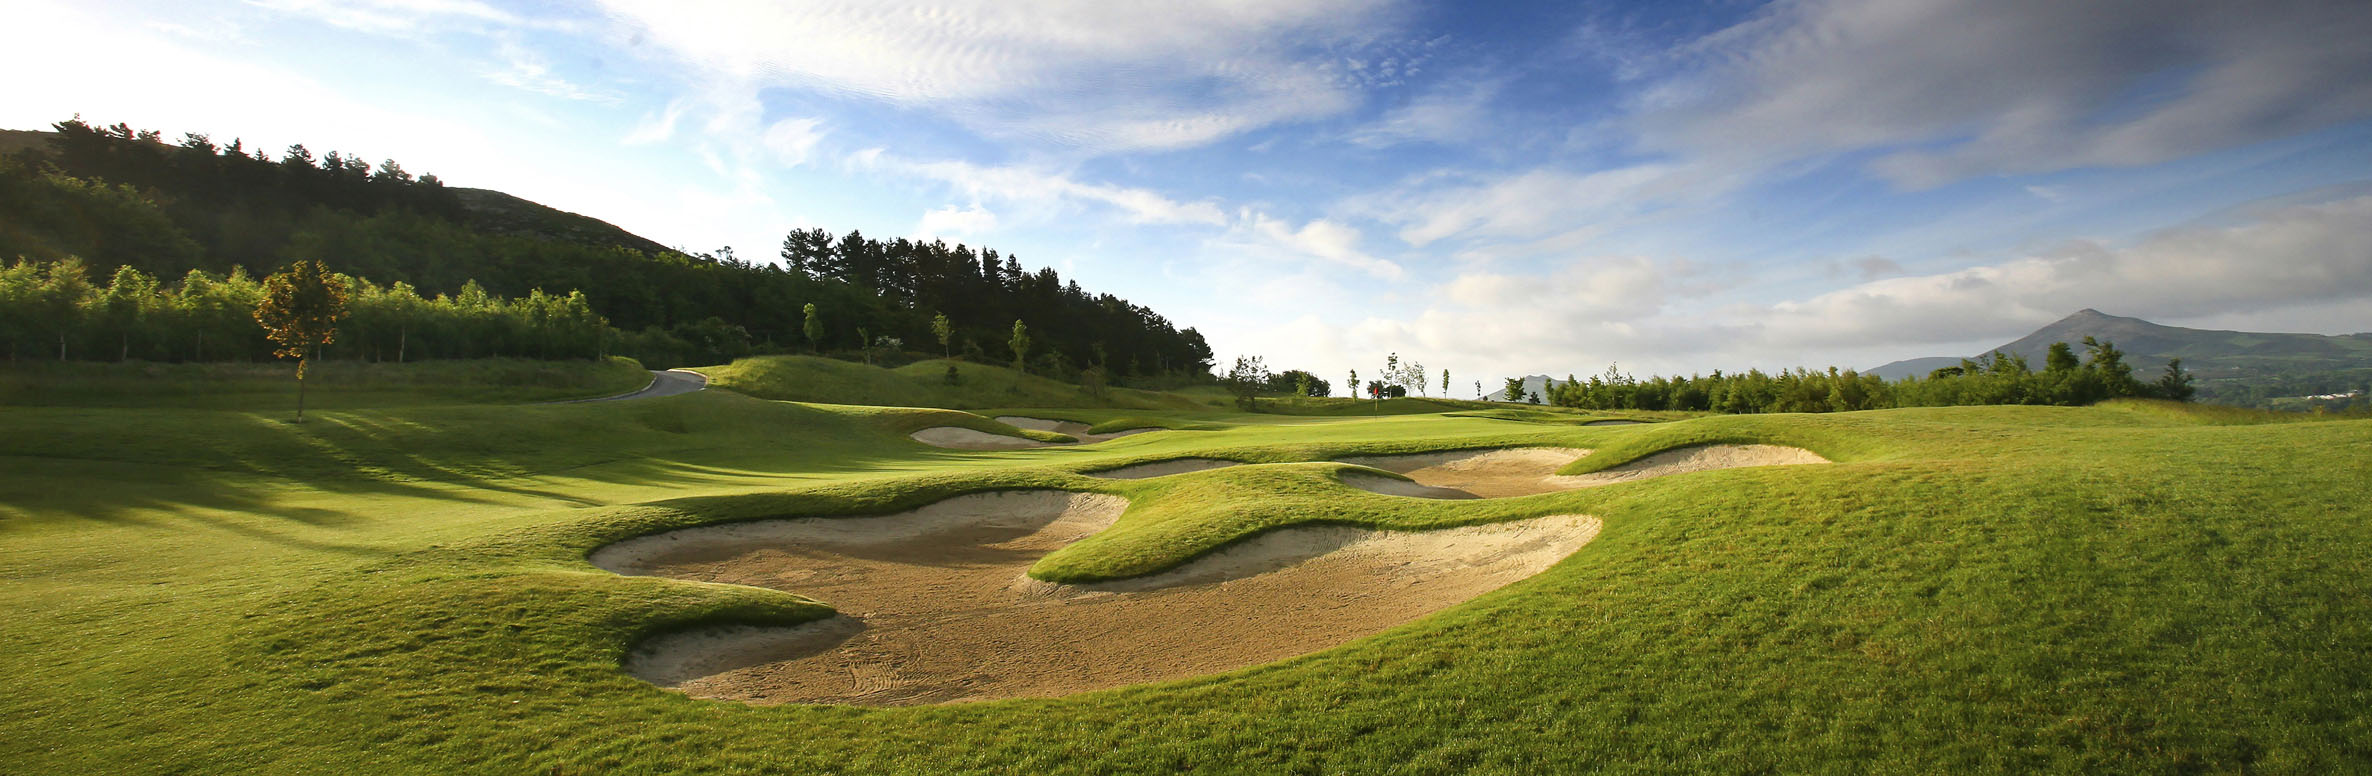 Golf Course Image - Dun Laoghaire Golf Club – Upper to Middle No. 16